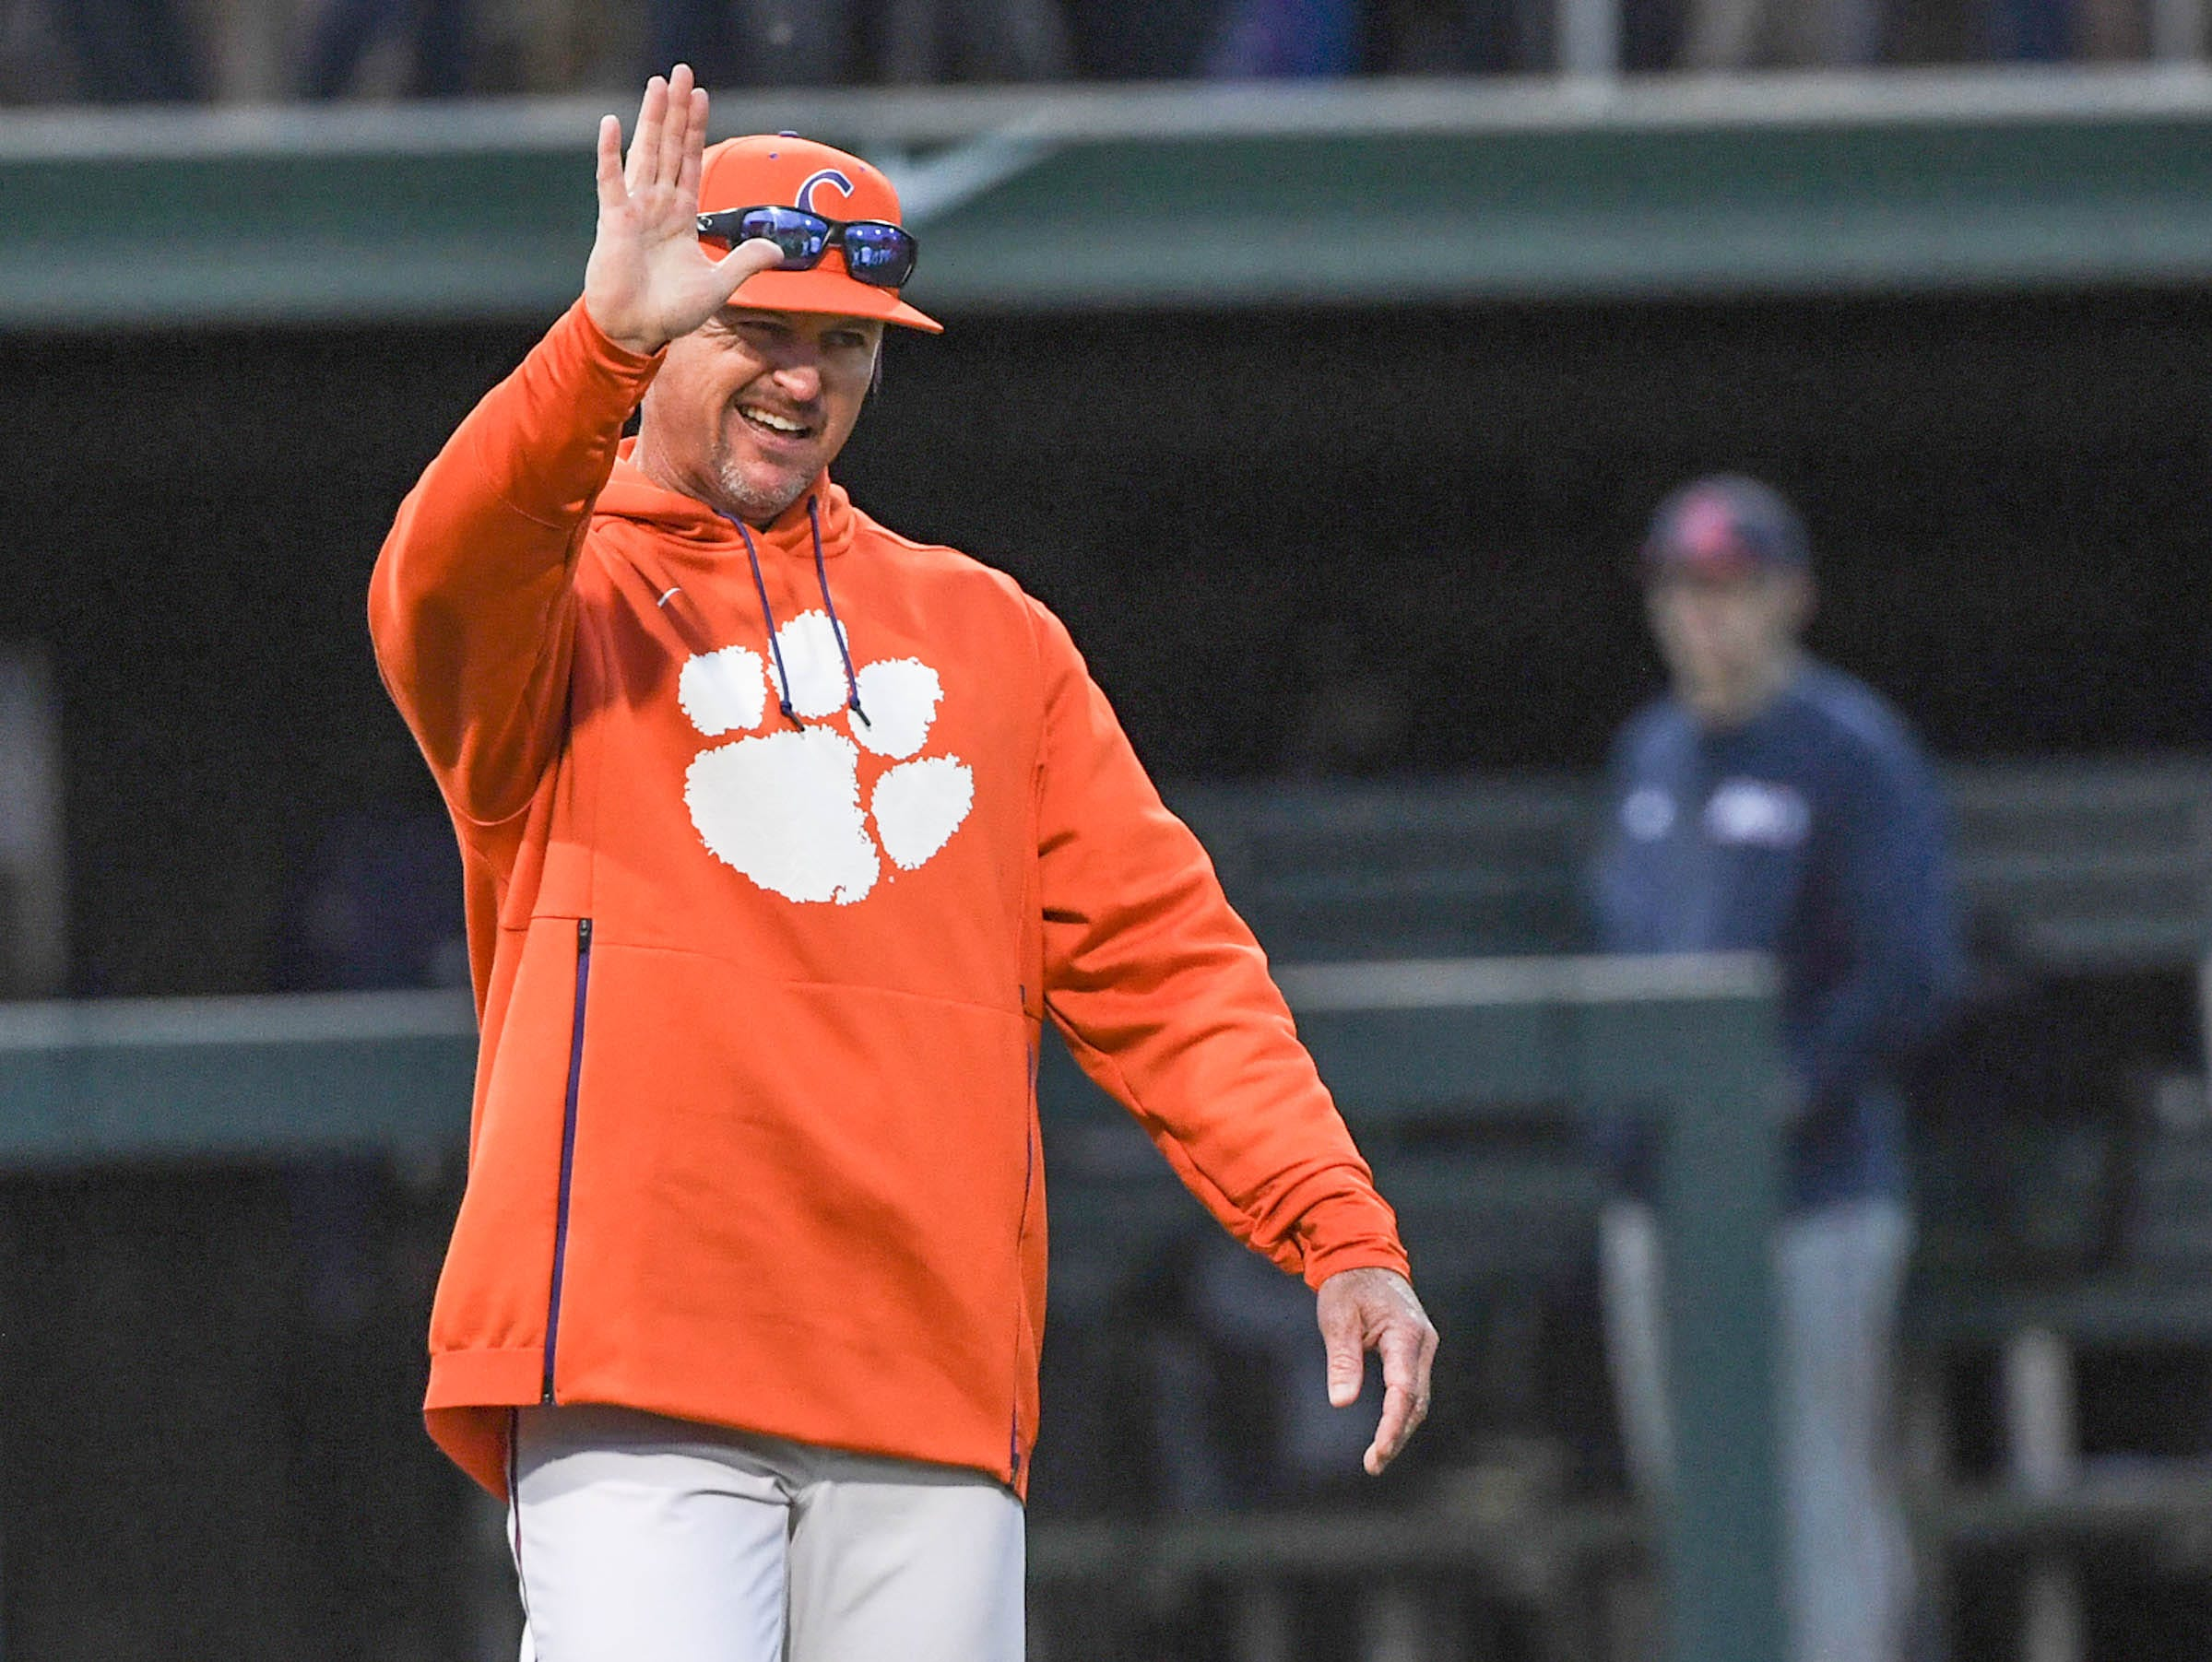 Clemson head coach Monte Lee celebrates a 6-2 win over South Alabama in the season opener at Doug Kingsmore Stadium in Clemson Friday, February 15, 2019.